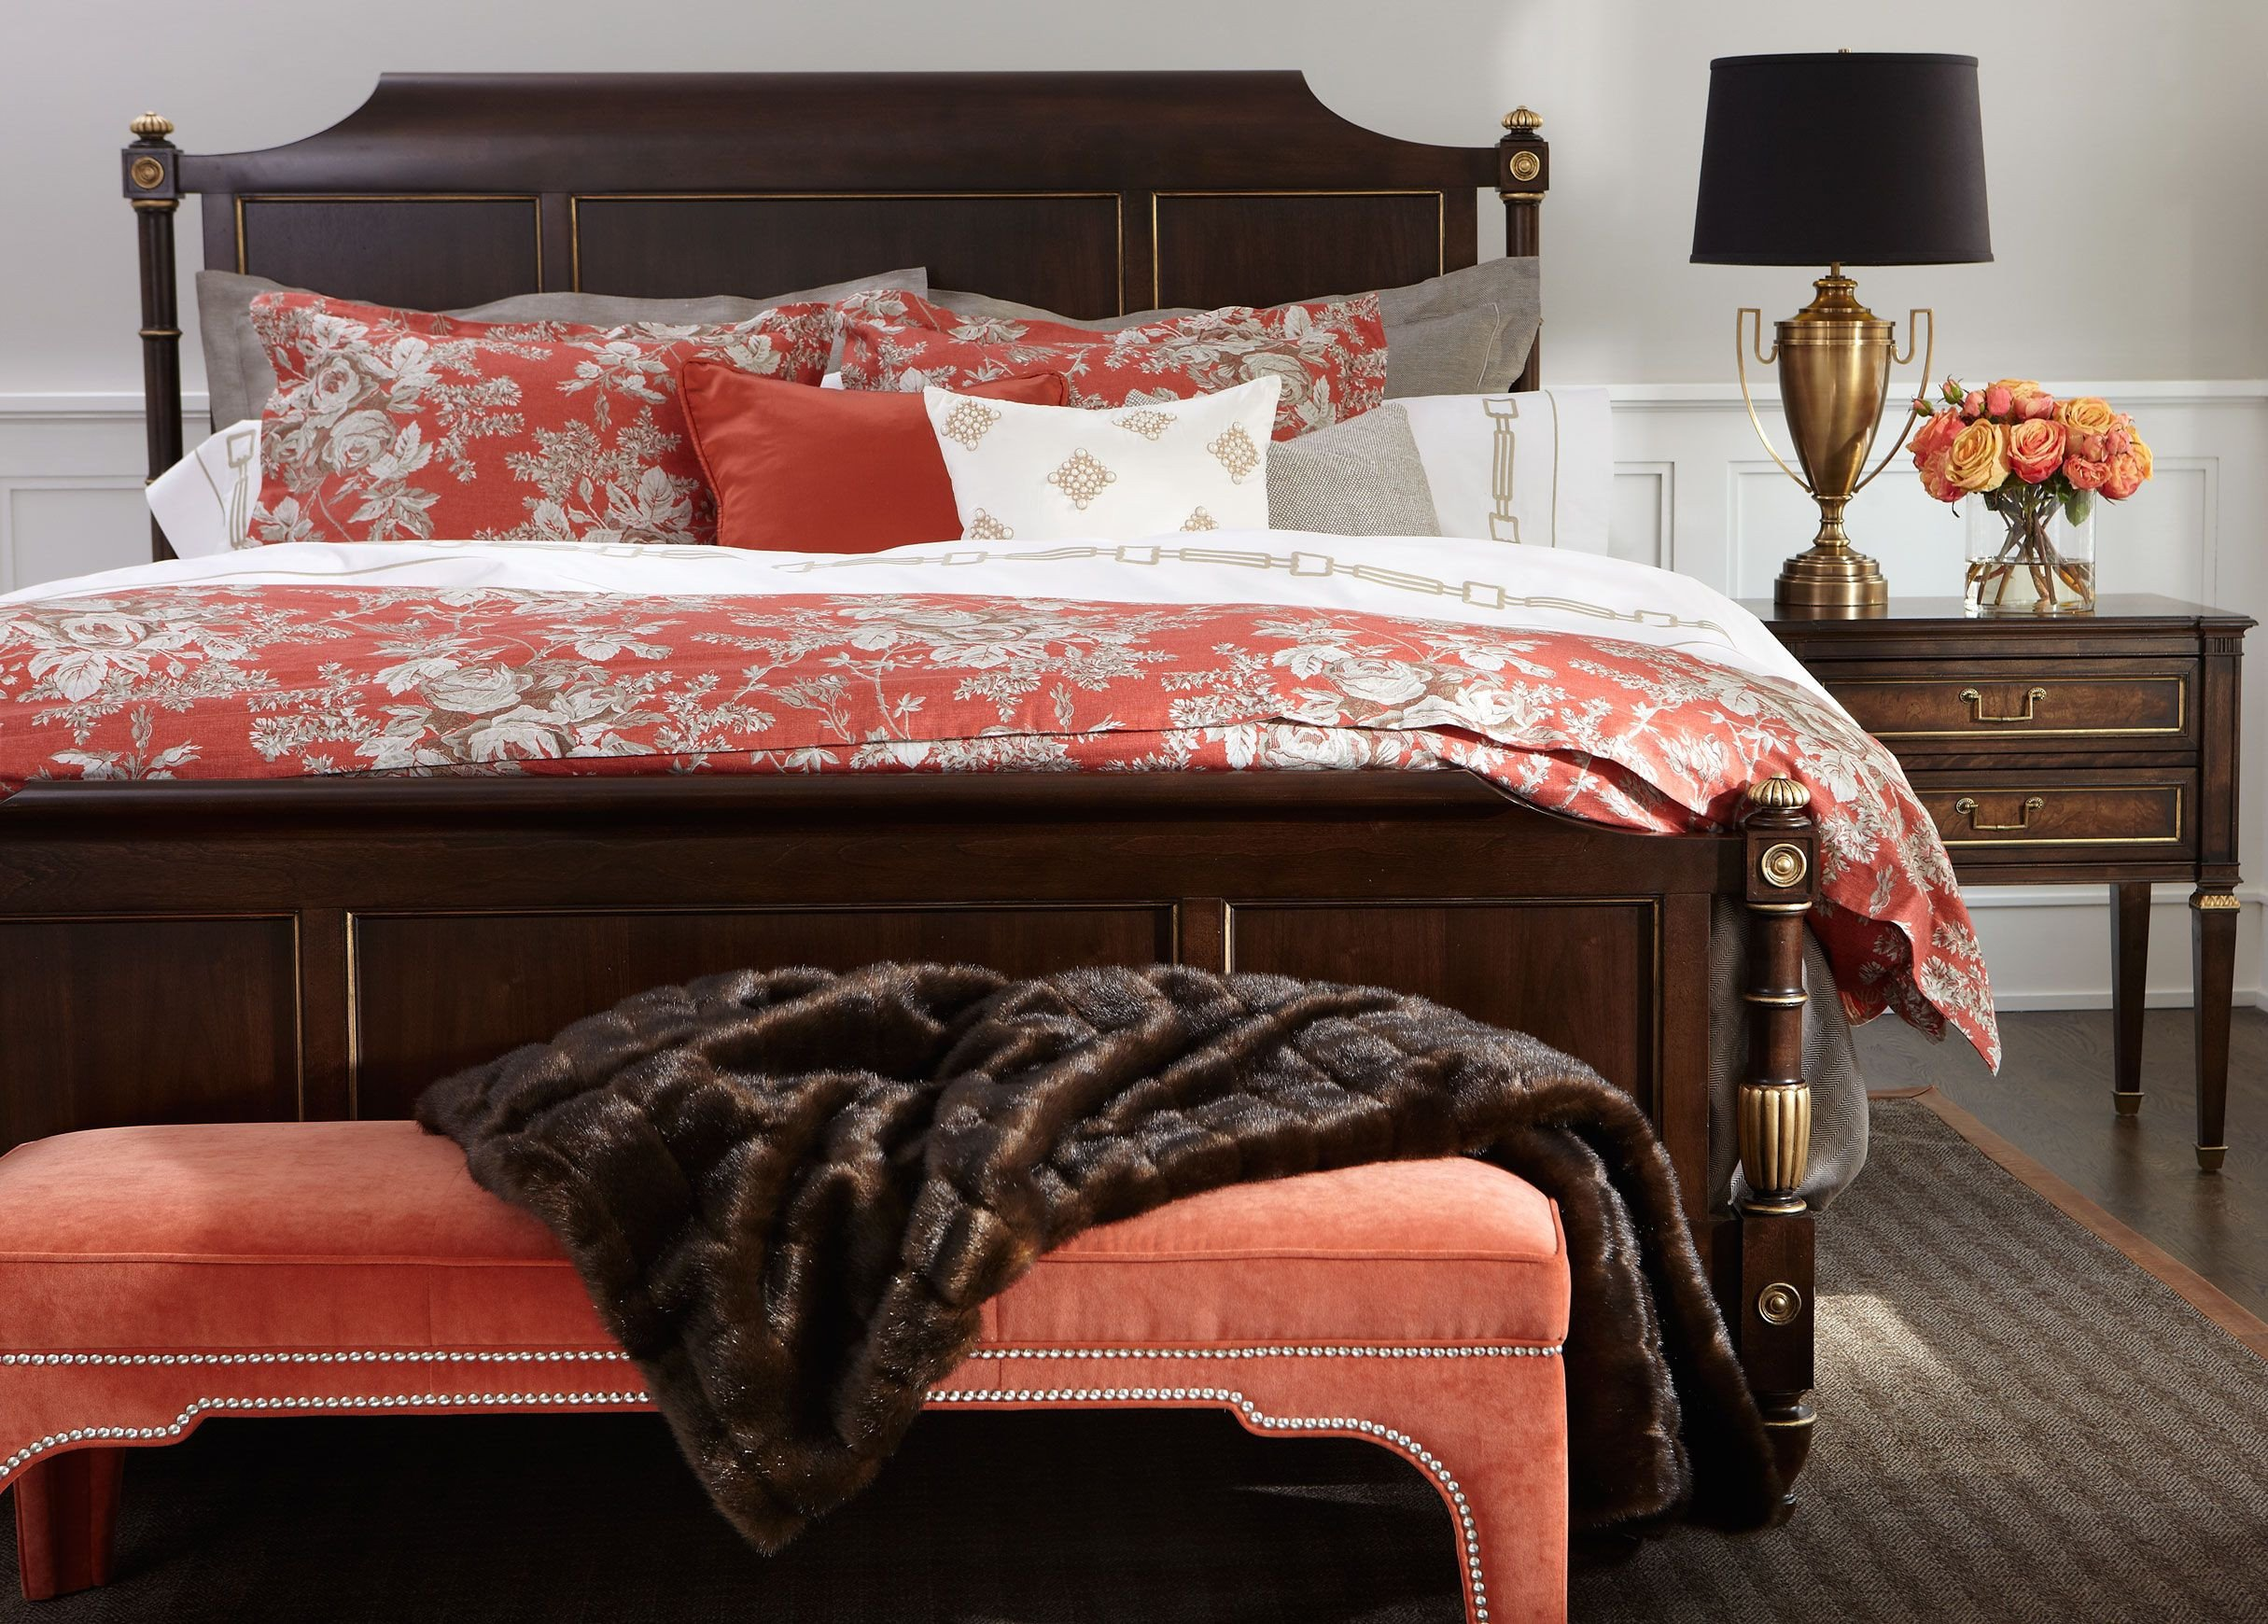 High Quality Bedroom Furniture Awesome Coral Dream Bedroom Shop Ethan Allen Omaha now